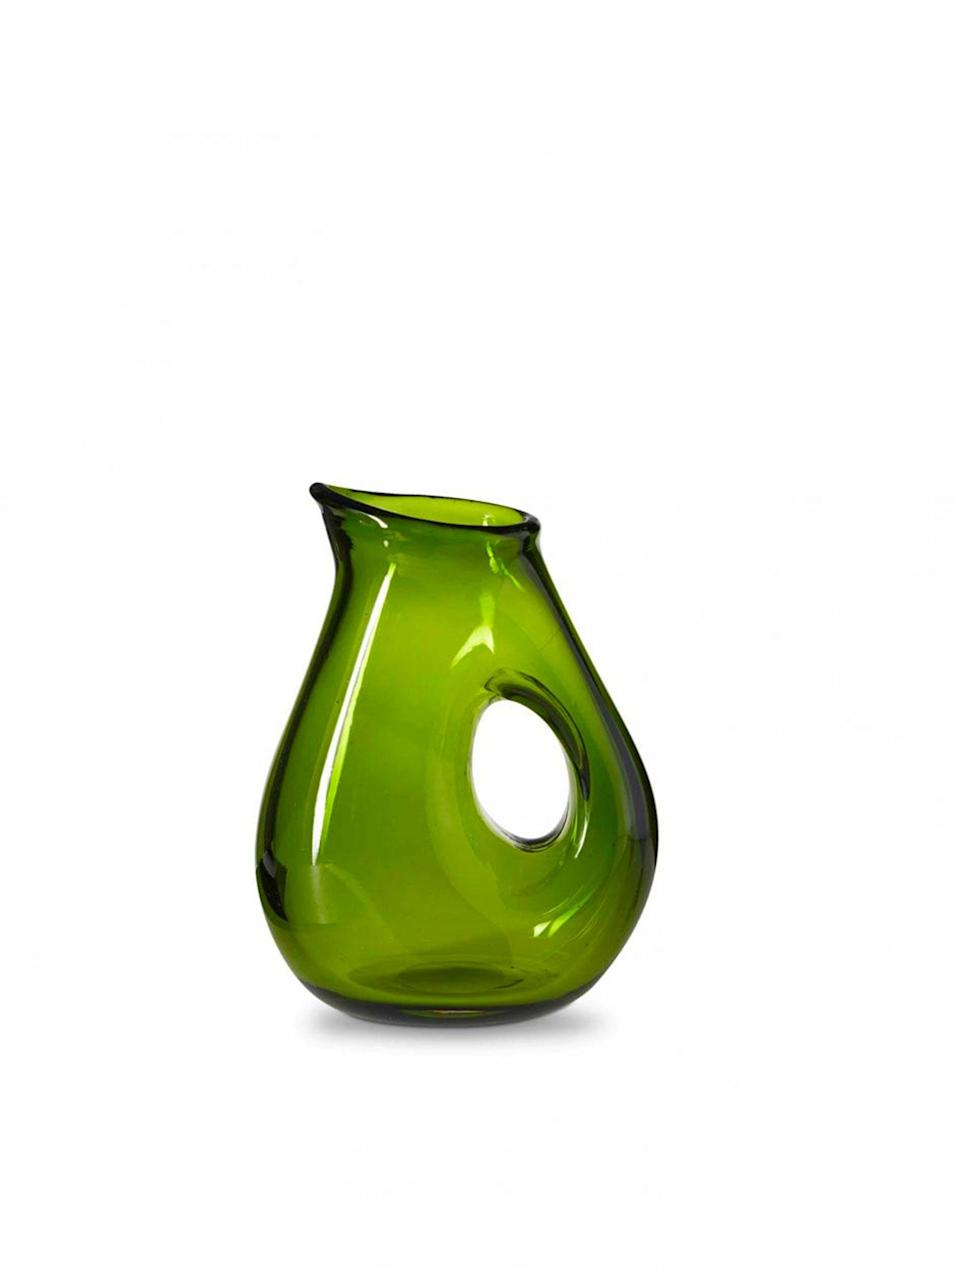 """This olive green, curvaceous jug with its chunky handle feels organic, like something you might come across in a garden. $35, Merci. <a href=""""https://www.merci-merci.com/en/pichet-olive.html"""" rel=""""nofollow noopener"""" target=""""_blank"""" data-ylk=""""slk:Get it now!"""" class=""""link rapid-noclick-resp"""">Get it now!</a>"""